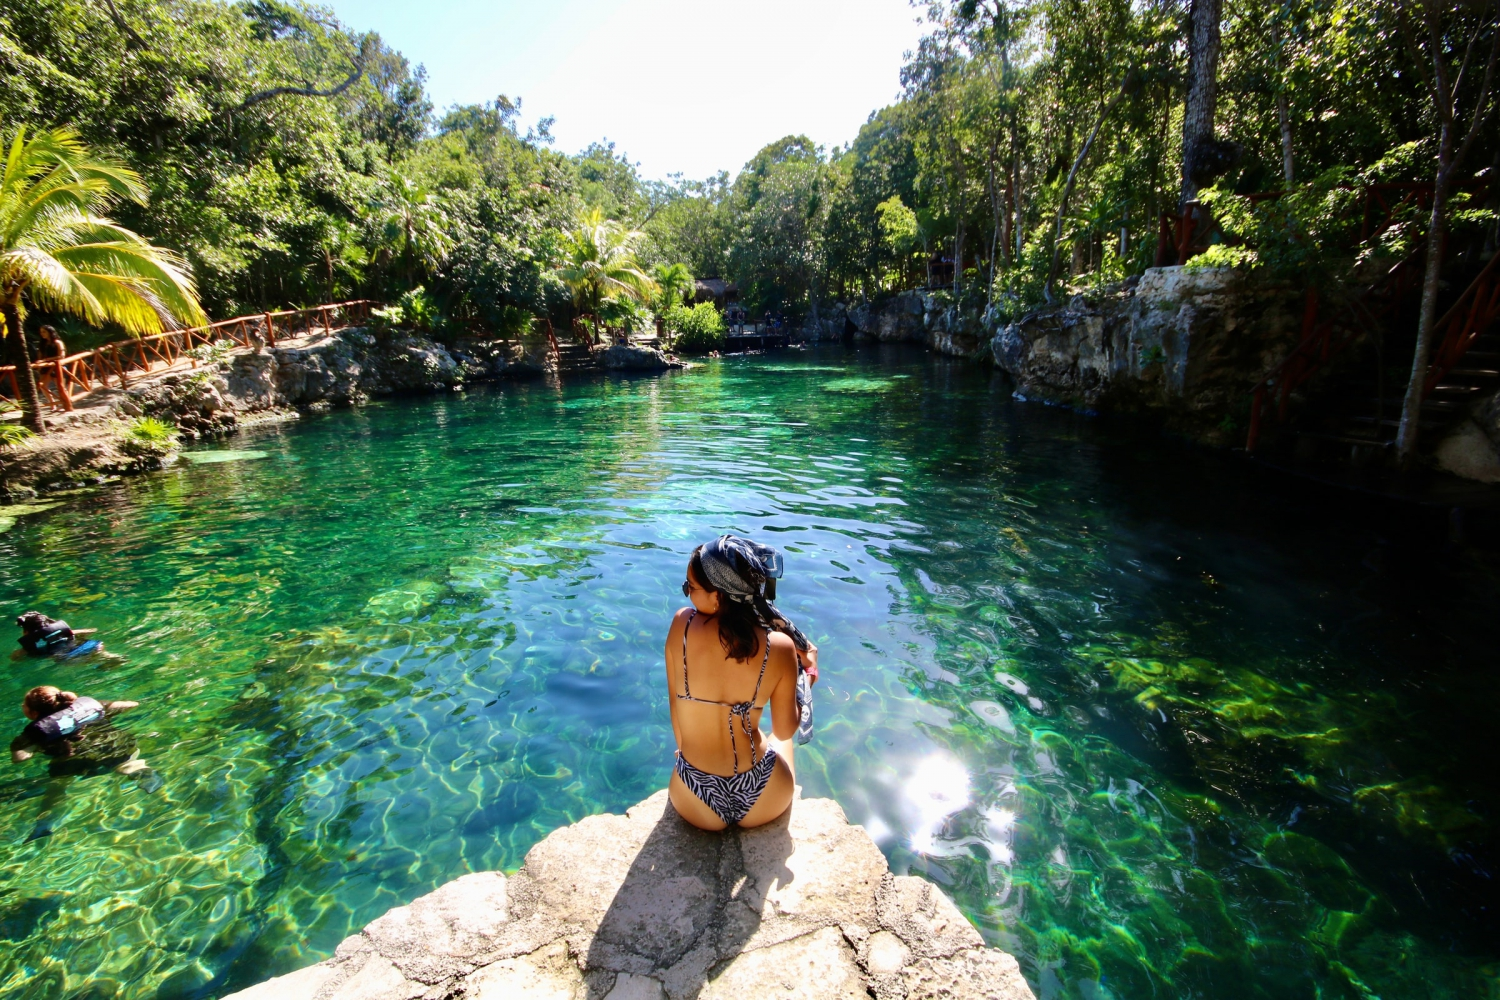 Places you need to visit when in Mexico